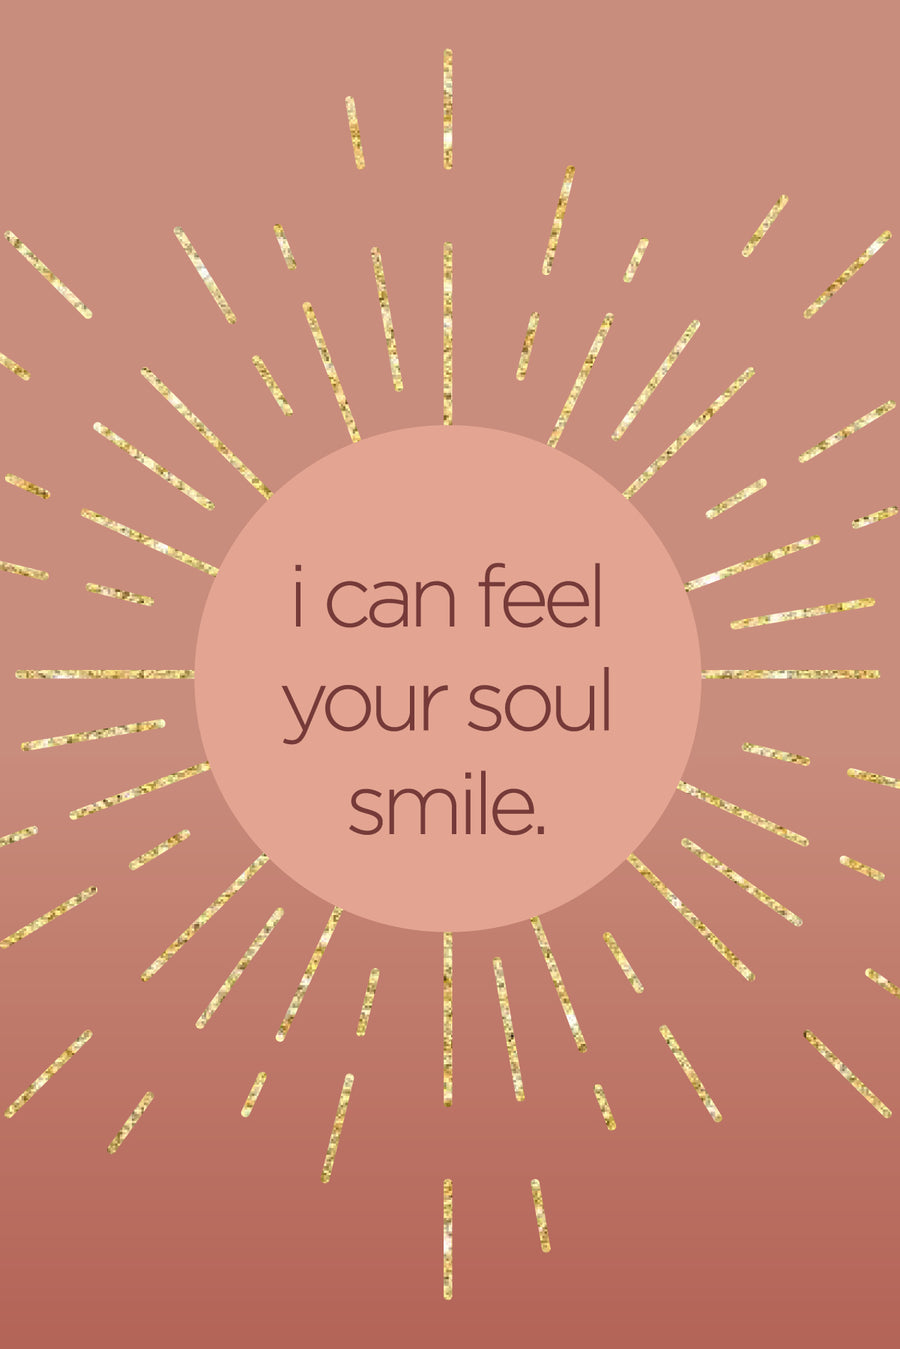 I can feel your soul smile